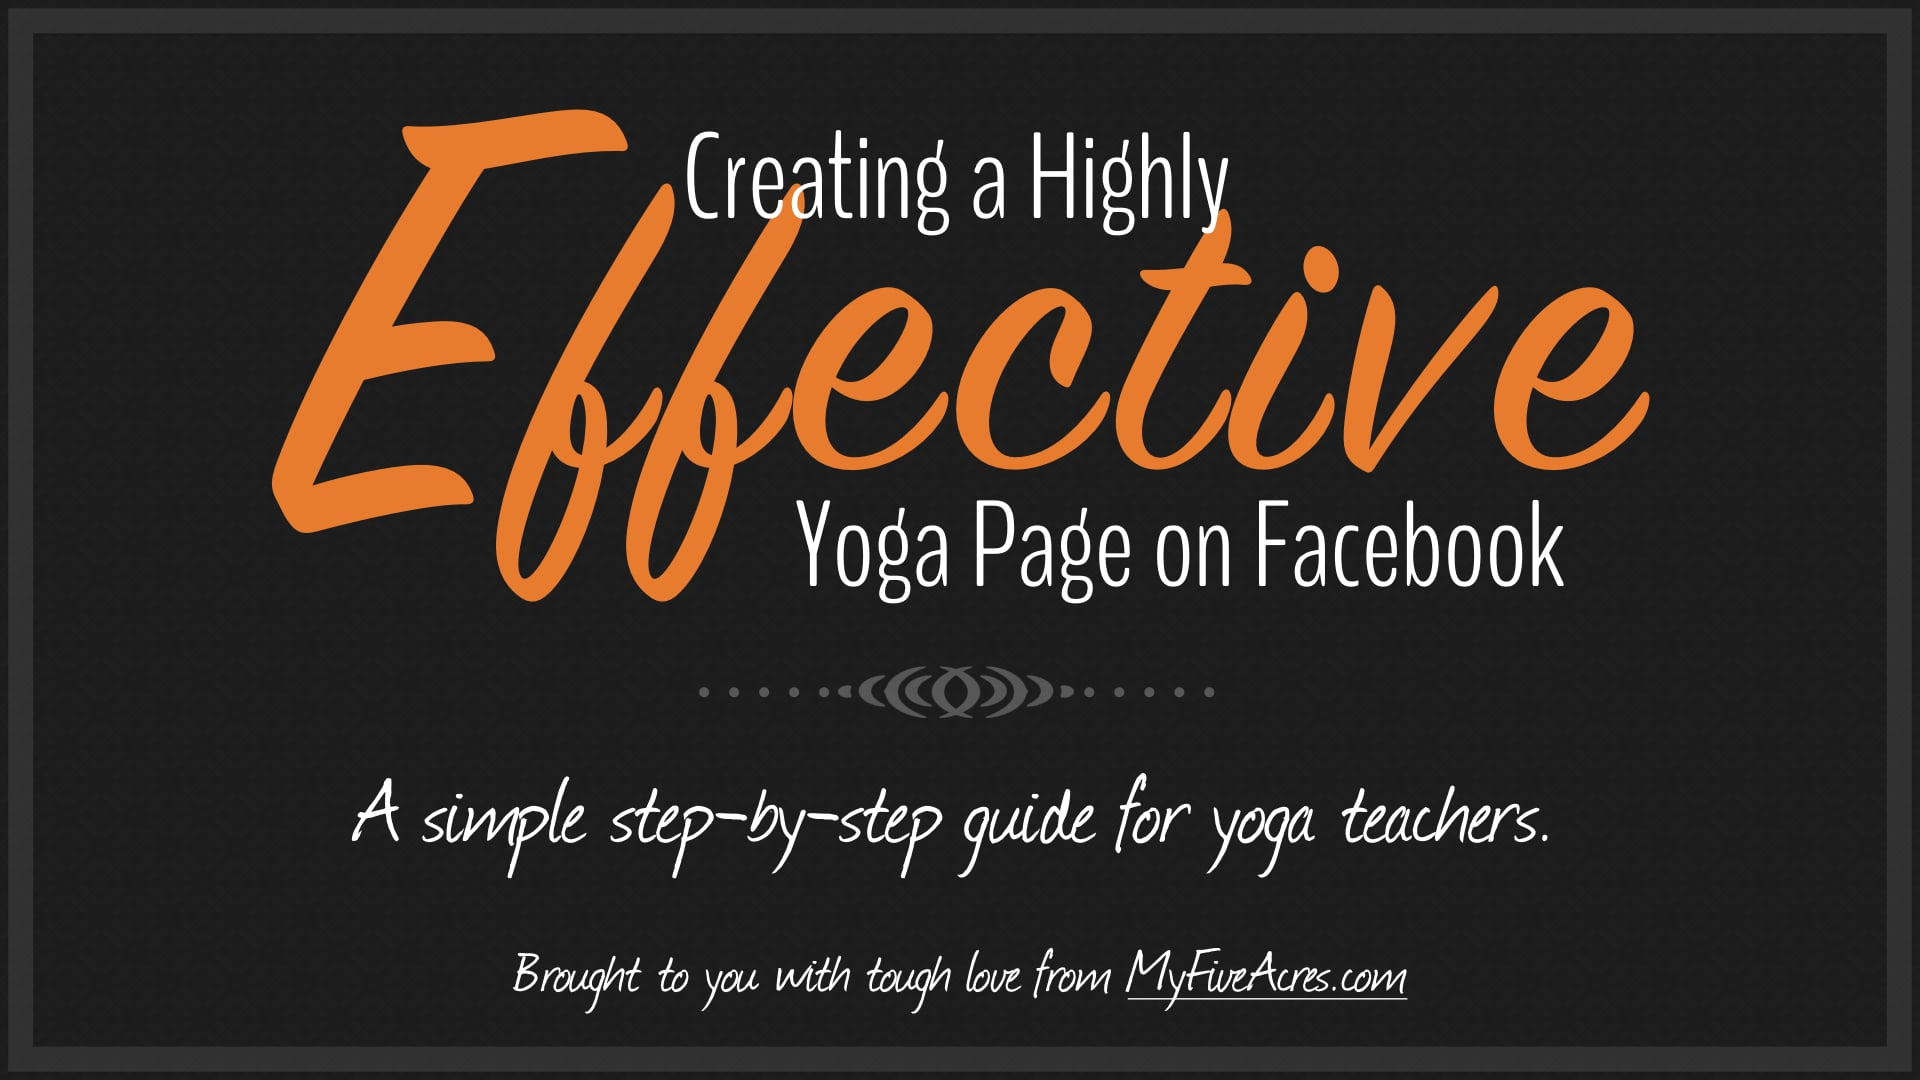 click to watch effective yoga page video